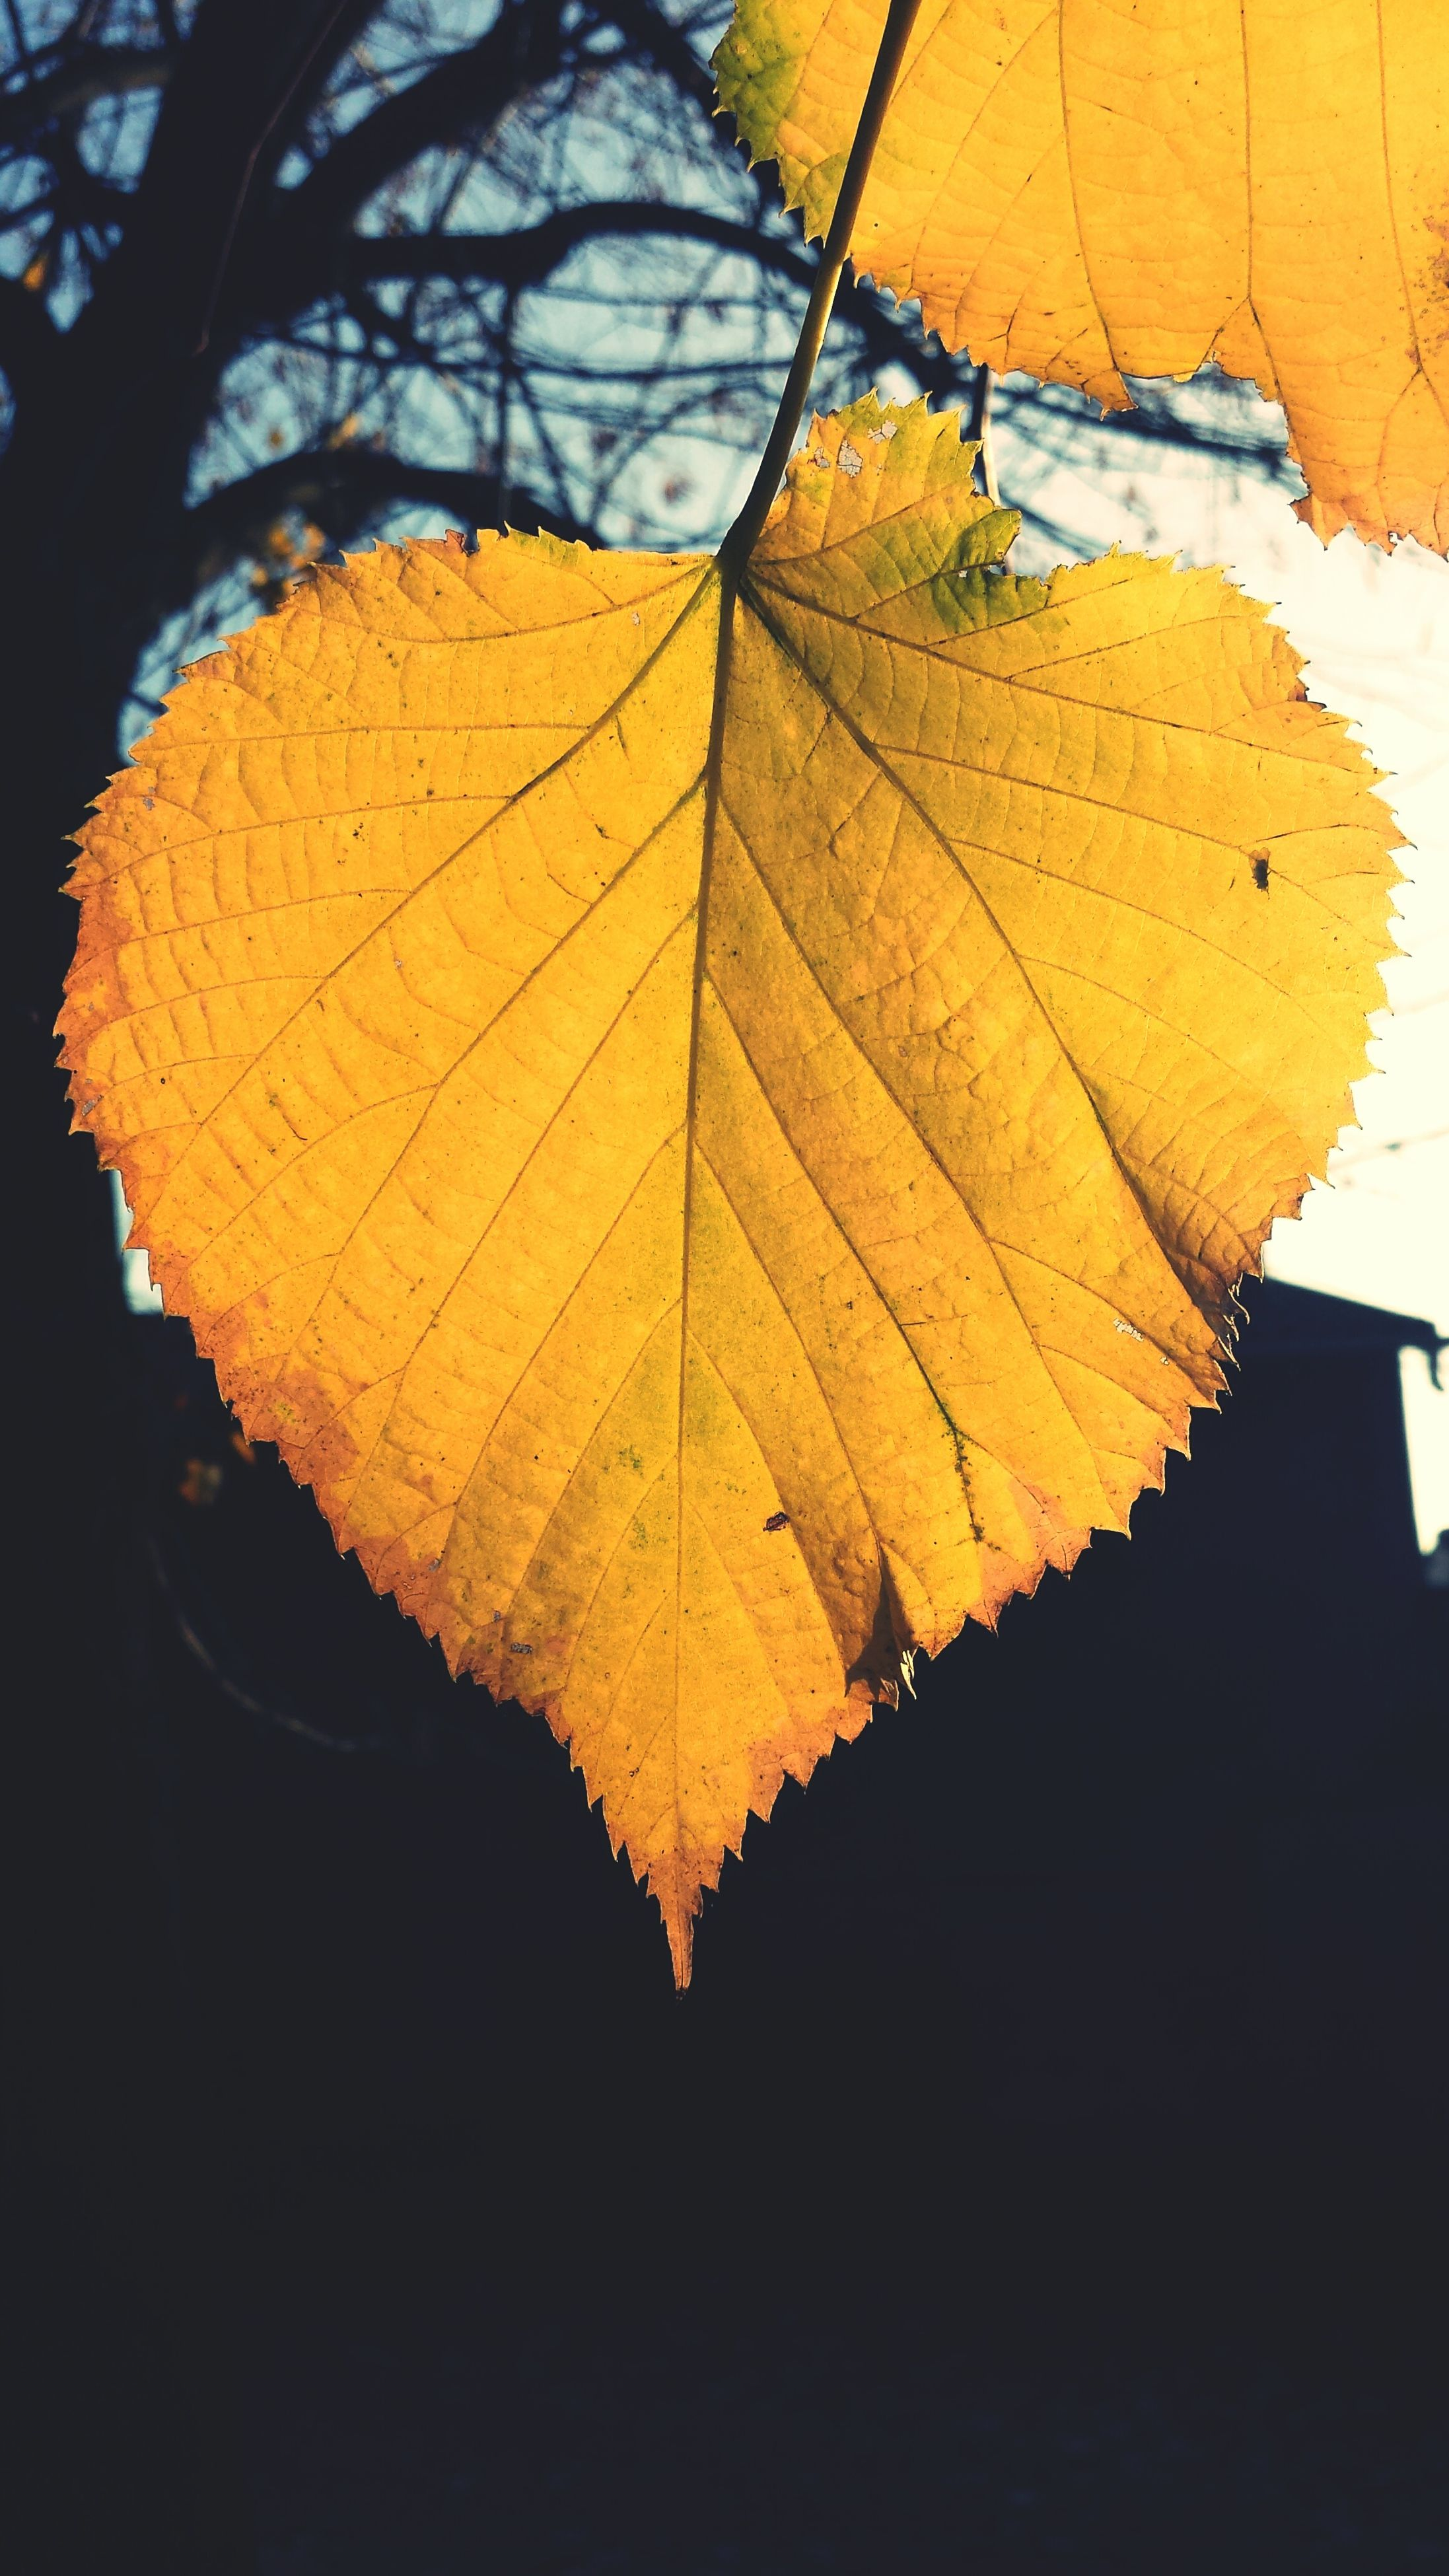 close-up, yellow, autumn, orange color, leaf, change, built structure, leaf vein, focus on foreground, no people, sunlight, shadow, architecture, pattern, nature, wall - building feature, outdoors, day, dry, low angle view